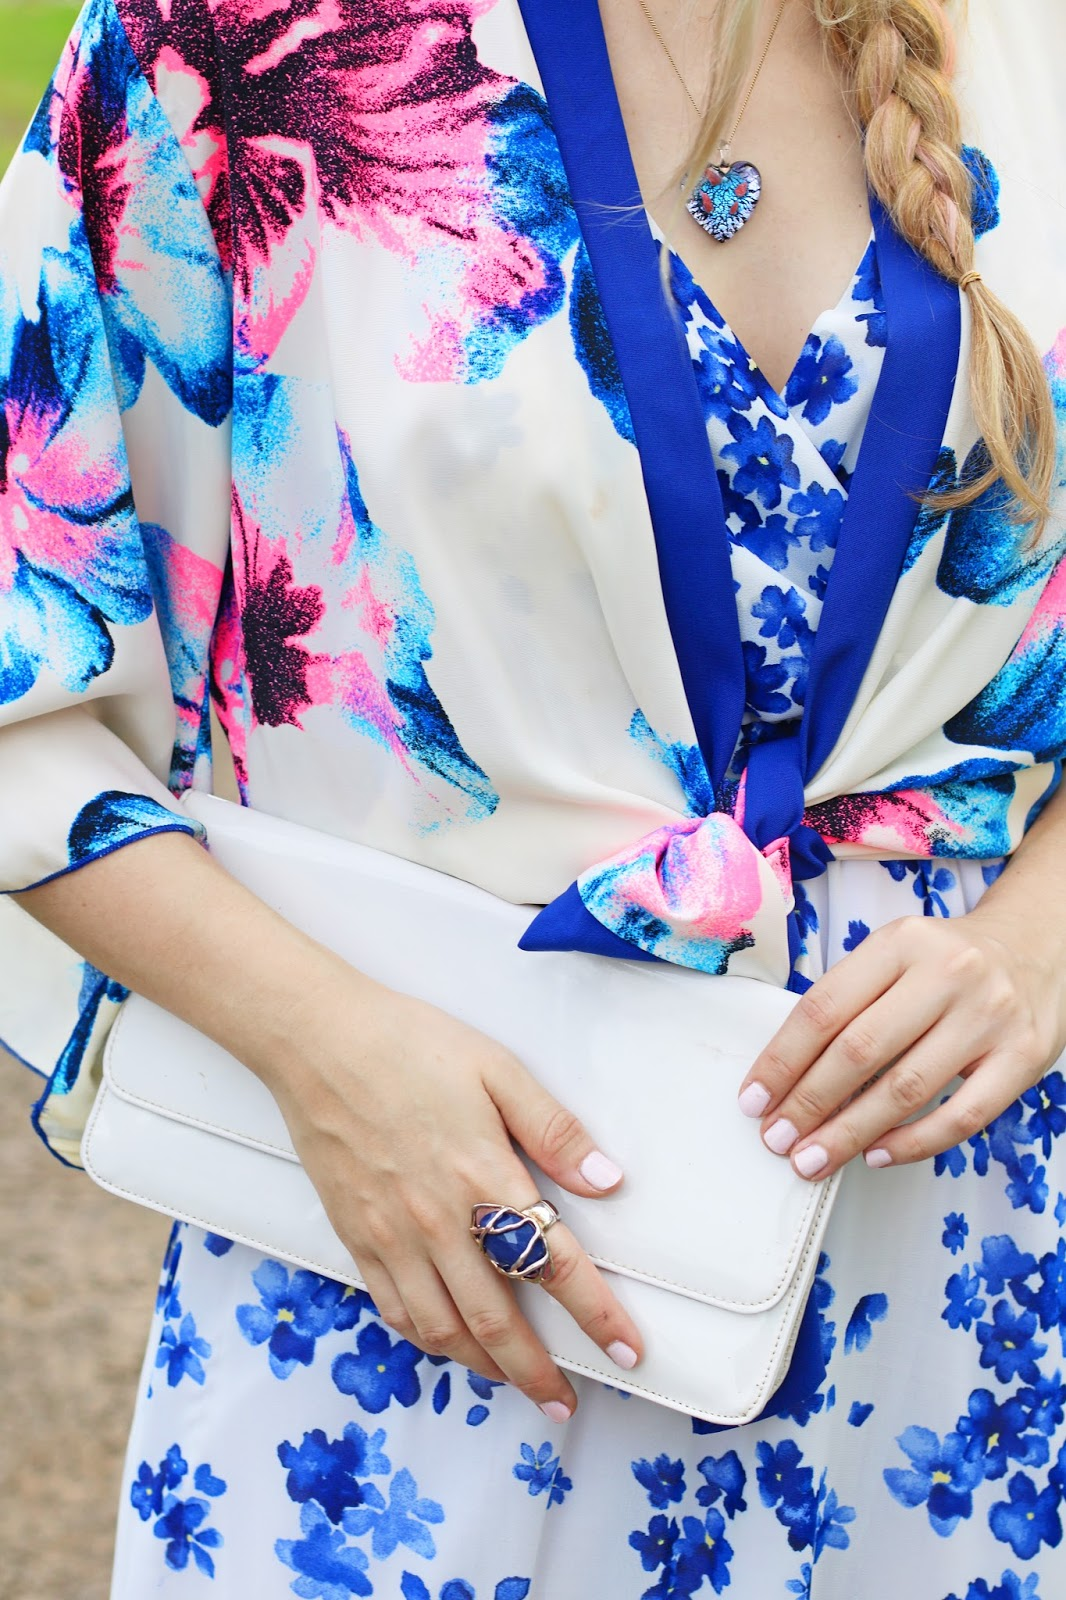 Great way to mix prints for Spring!